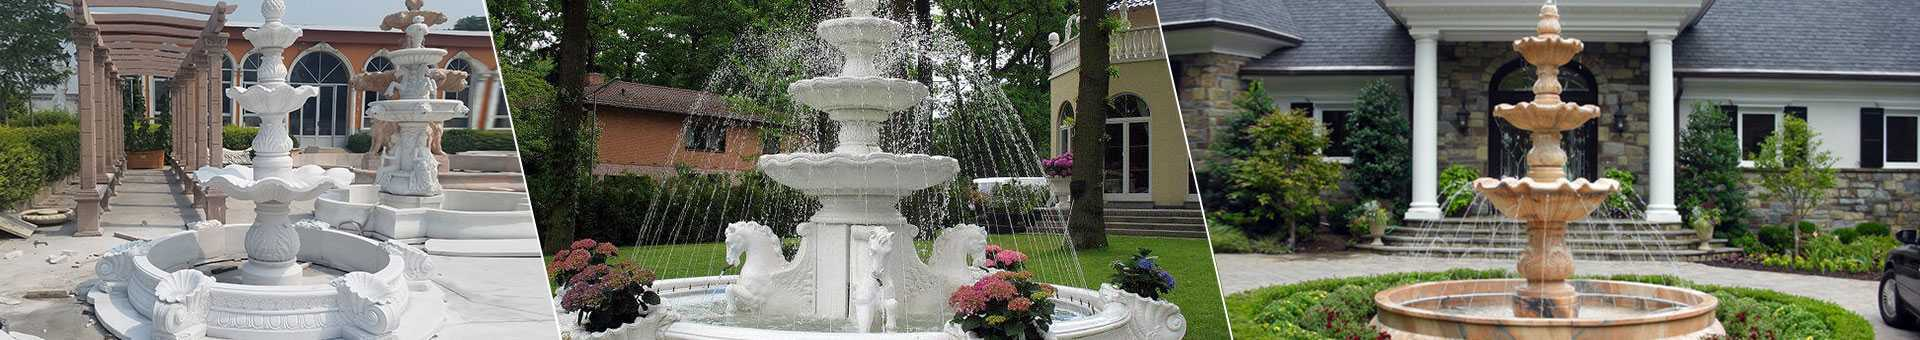 Water-Fountain-for-Sale